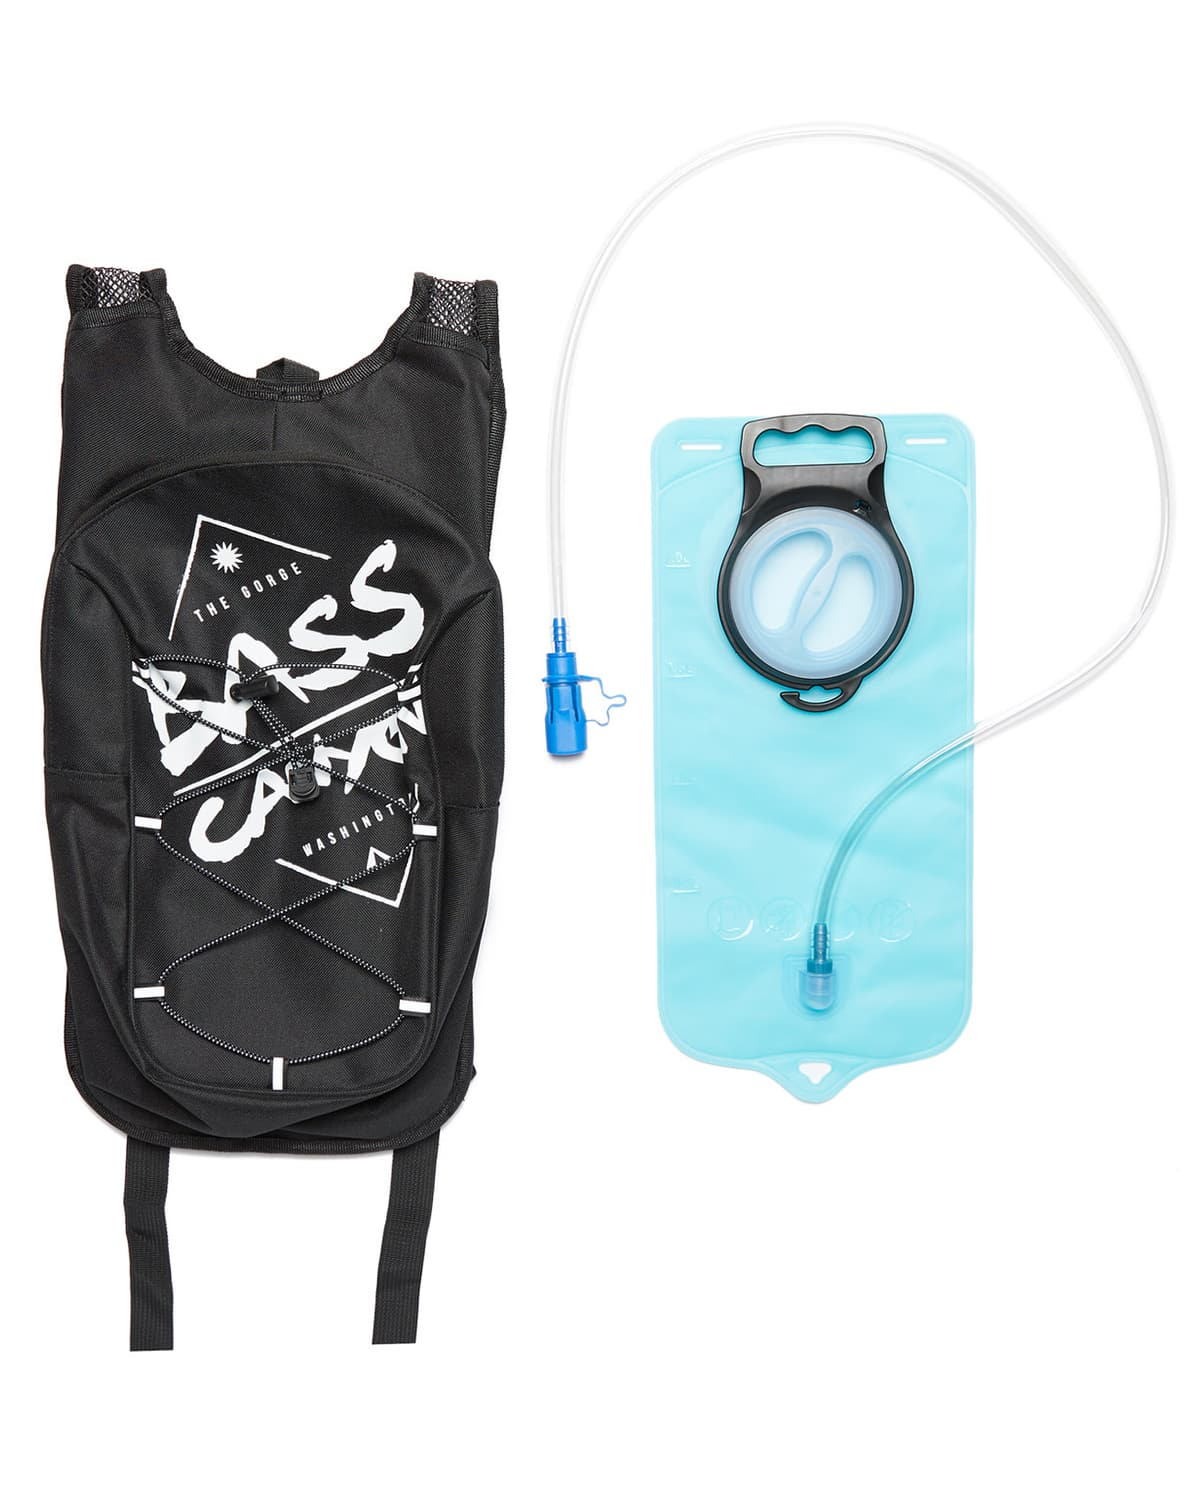 Bass Canyon Hydration Pack